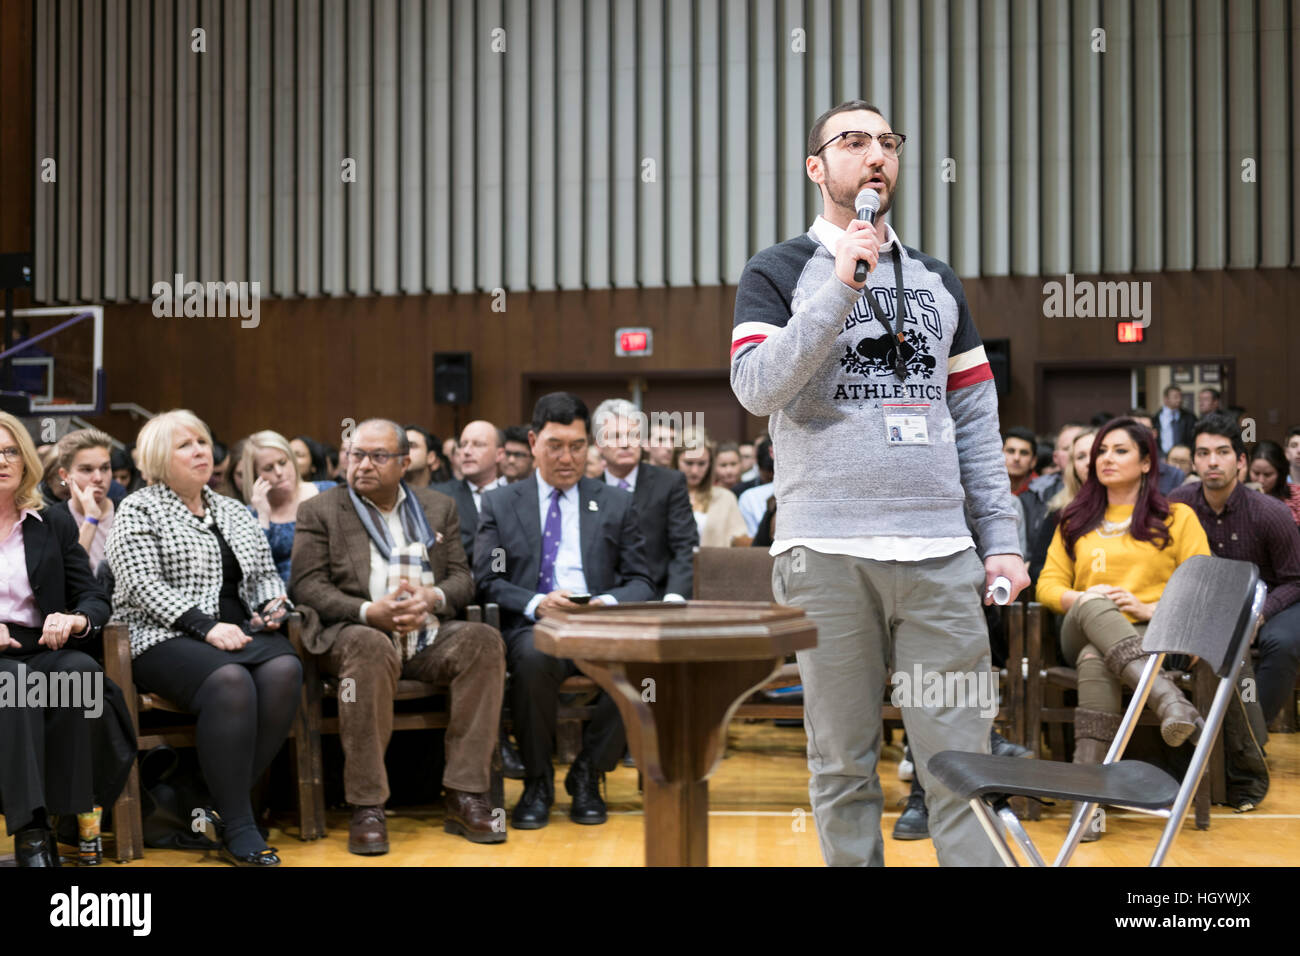 London, Ontario, Canada, 13th January, 2017. An organizer instructs the members of the audience about the rules Stock Photo